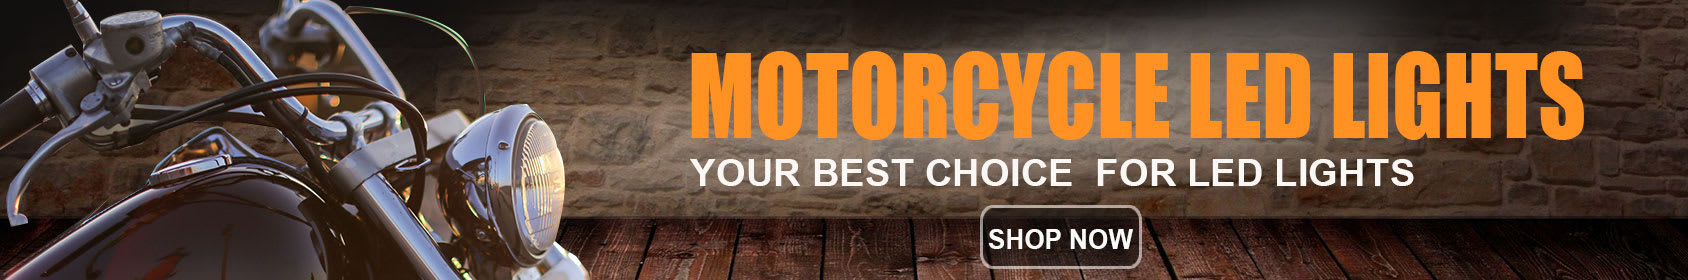 Special offers on Genuine Motorcycle Spare Parts And Accessories -